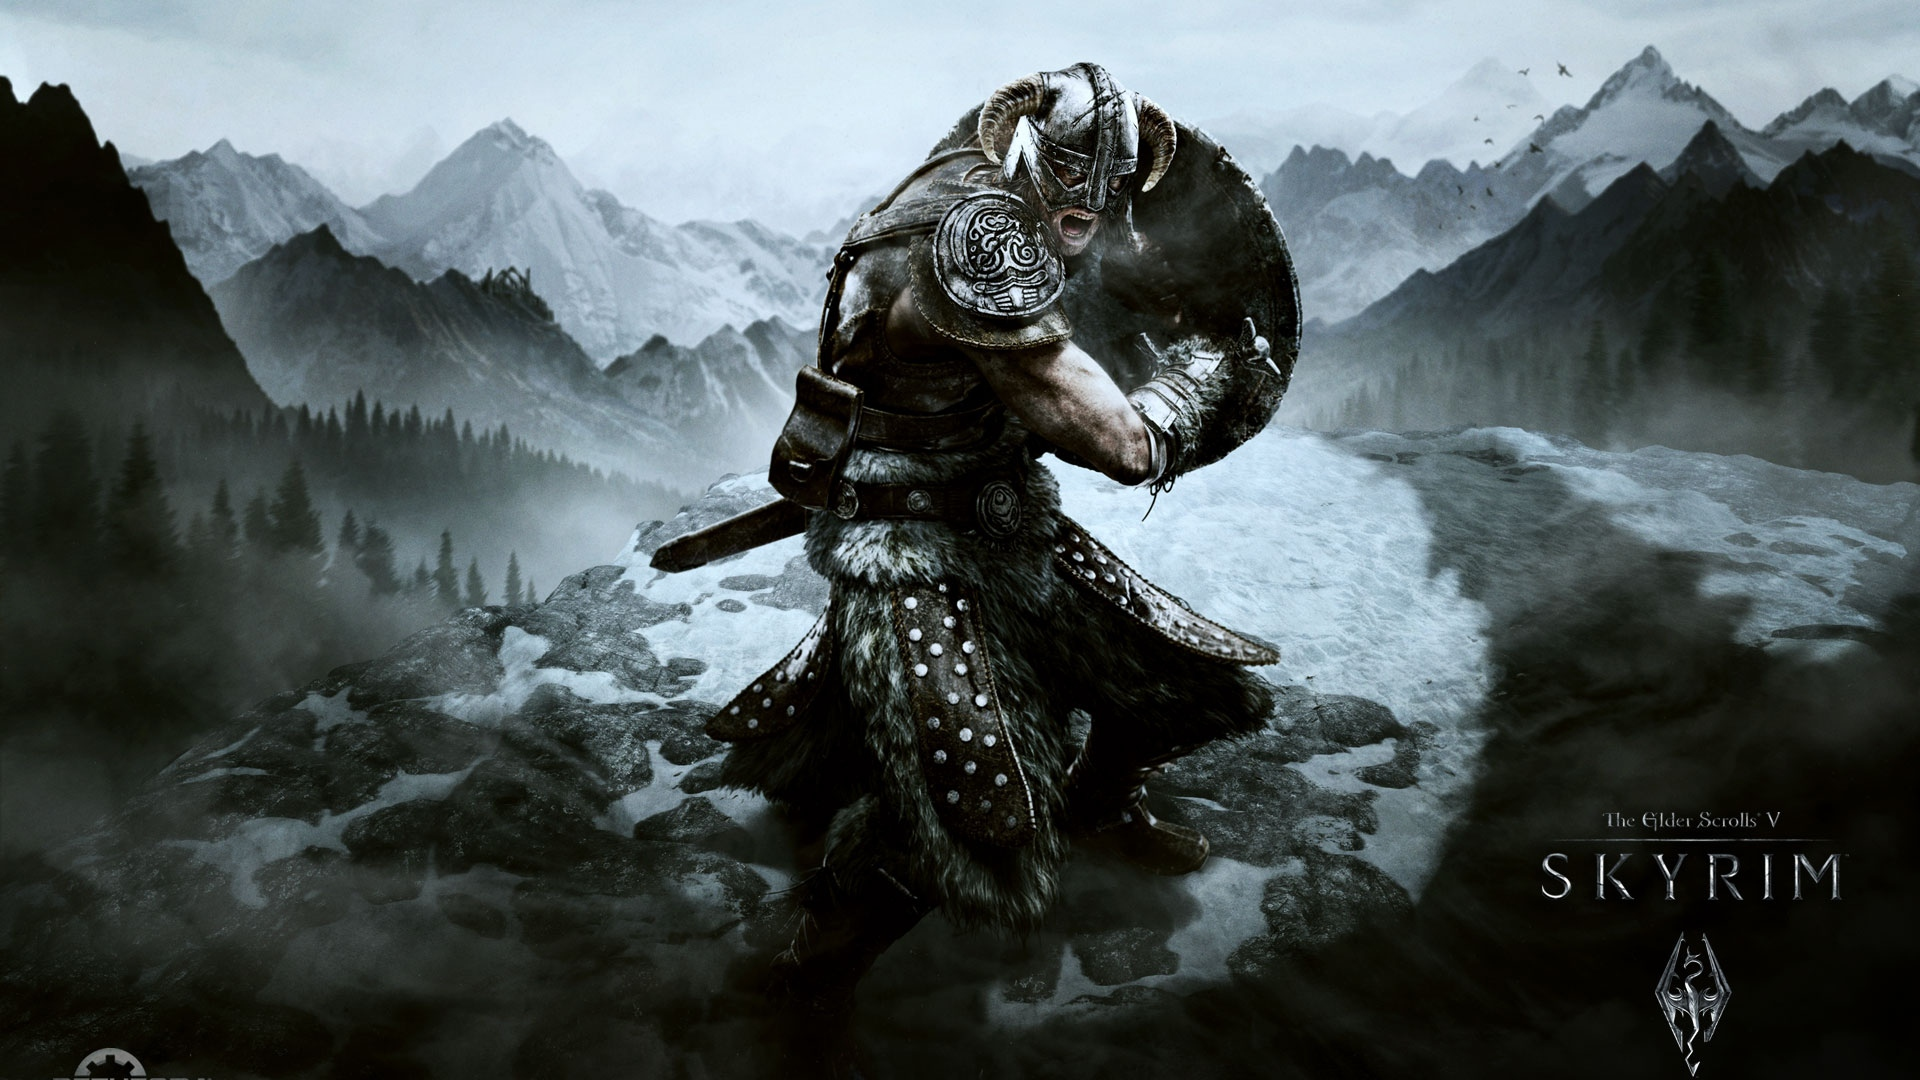 download wallpaper 1920x1080 skyrim, dragonborn, the elder scrolls v